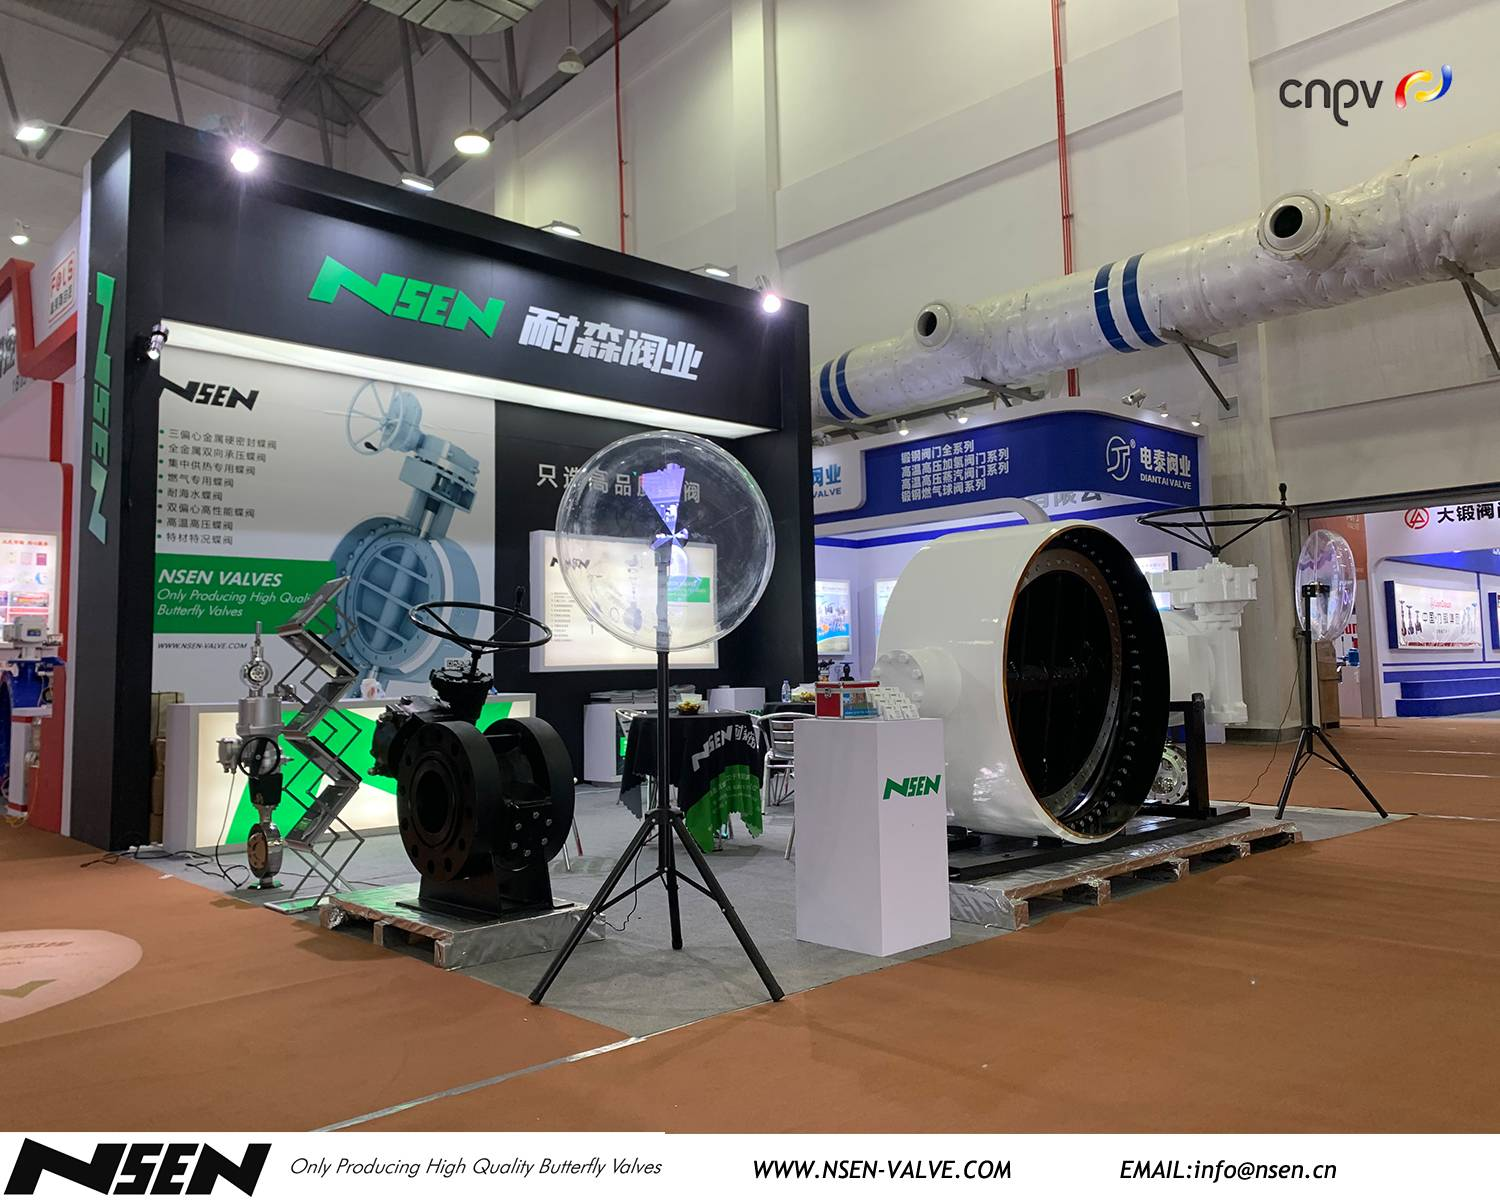 NSEN Valve attend CNPV 2020 Booth 1B05